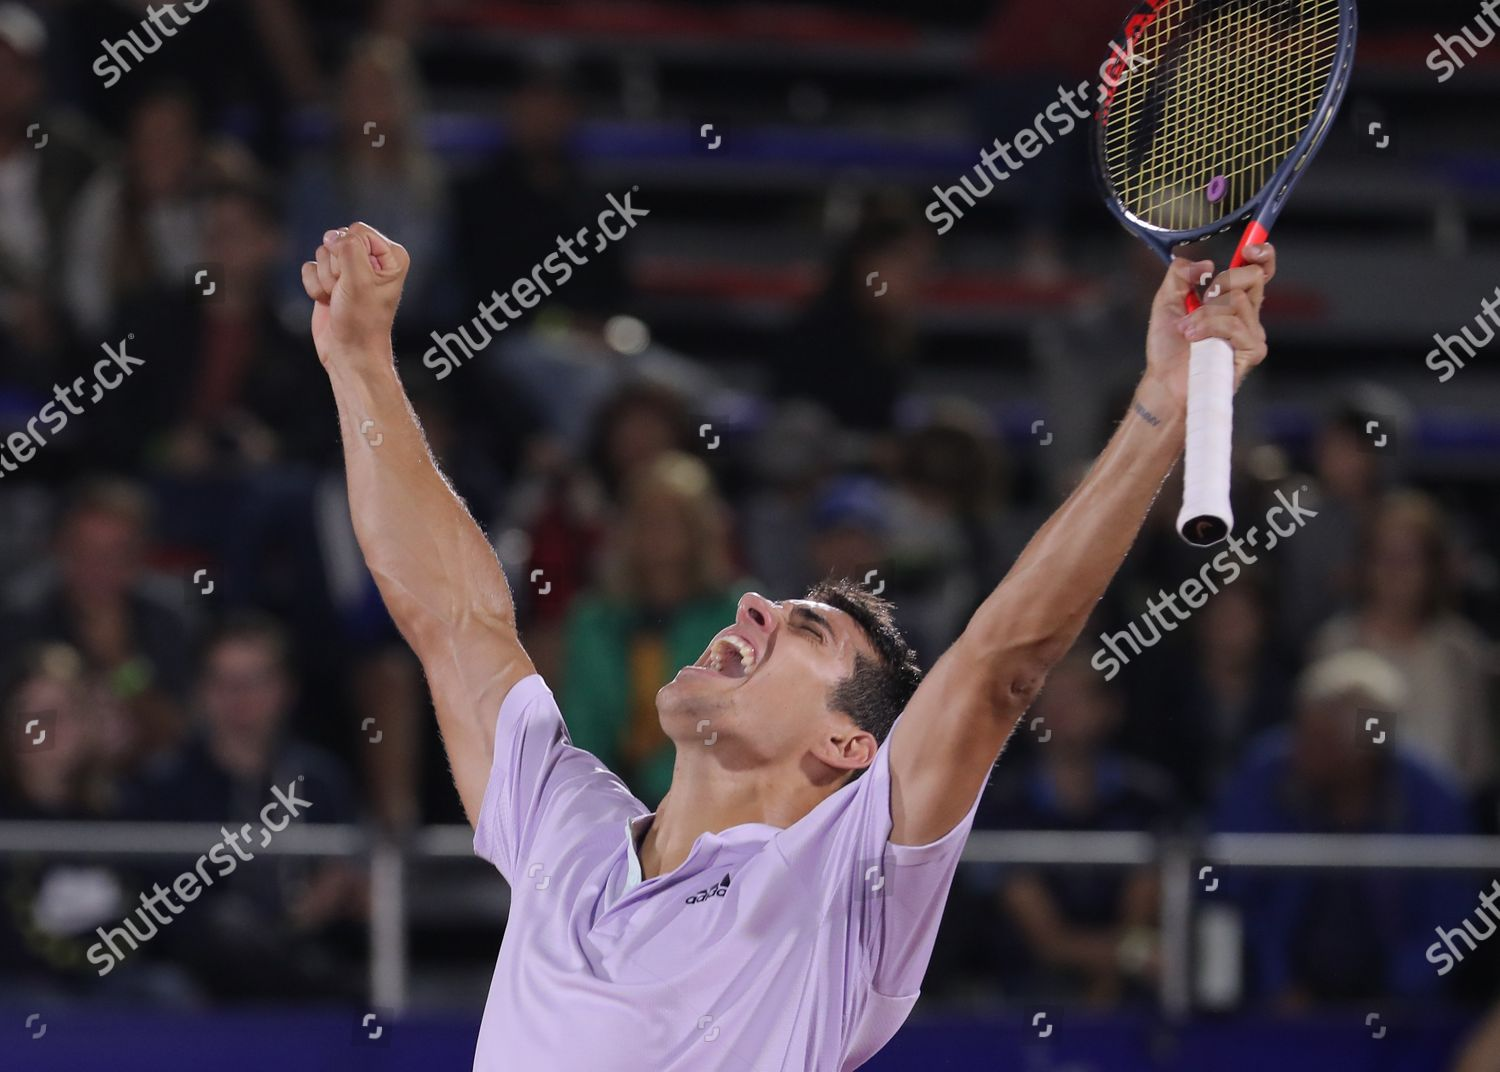 Chilean Tennis Player Cristian Garin Celebrates After Editorial Stock Photo Stock Image Shutterstock